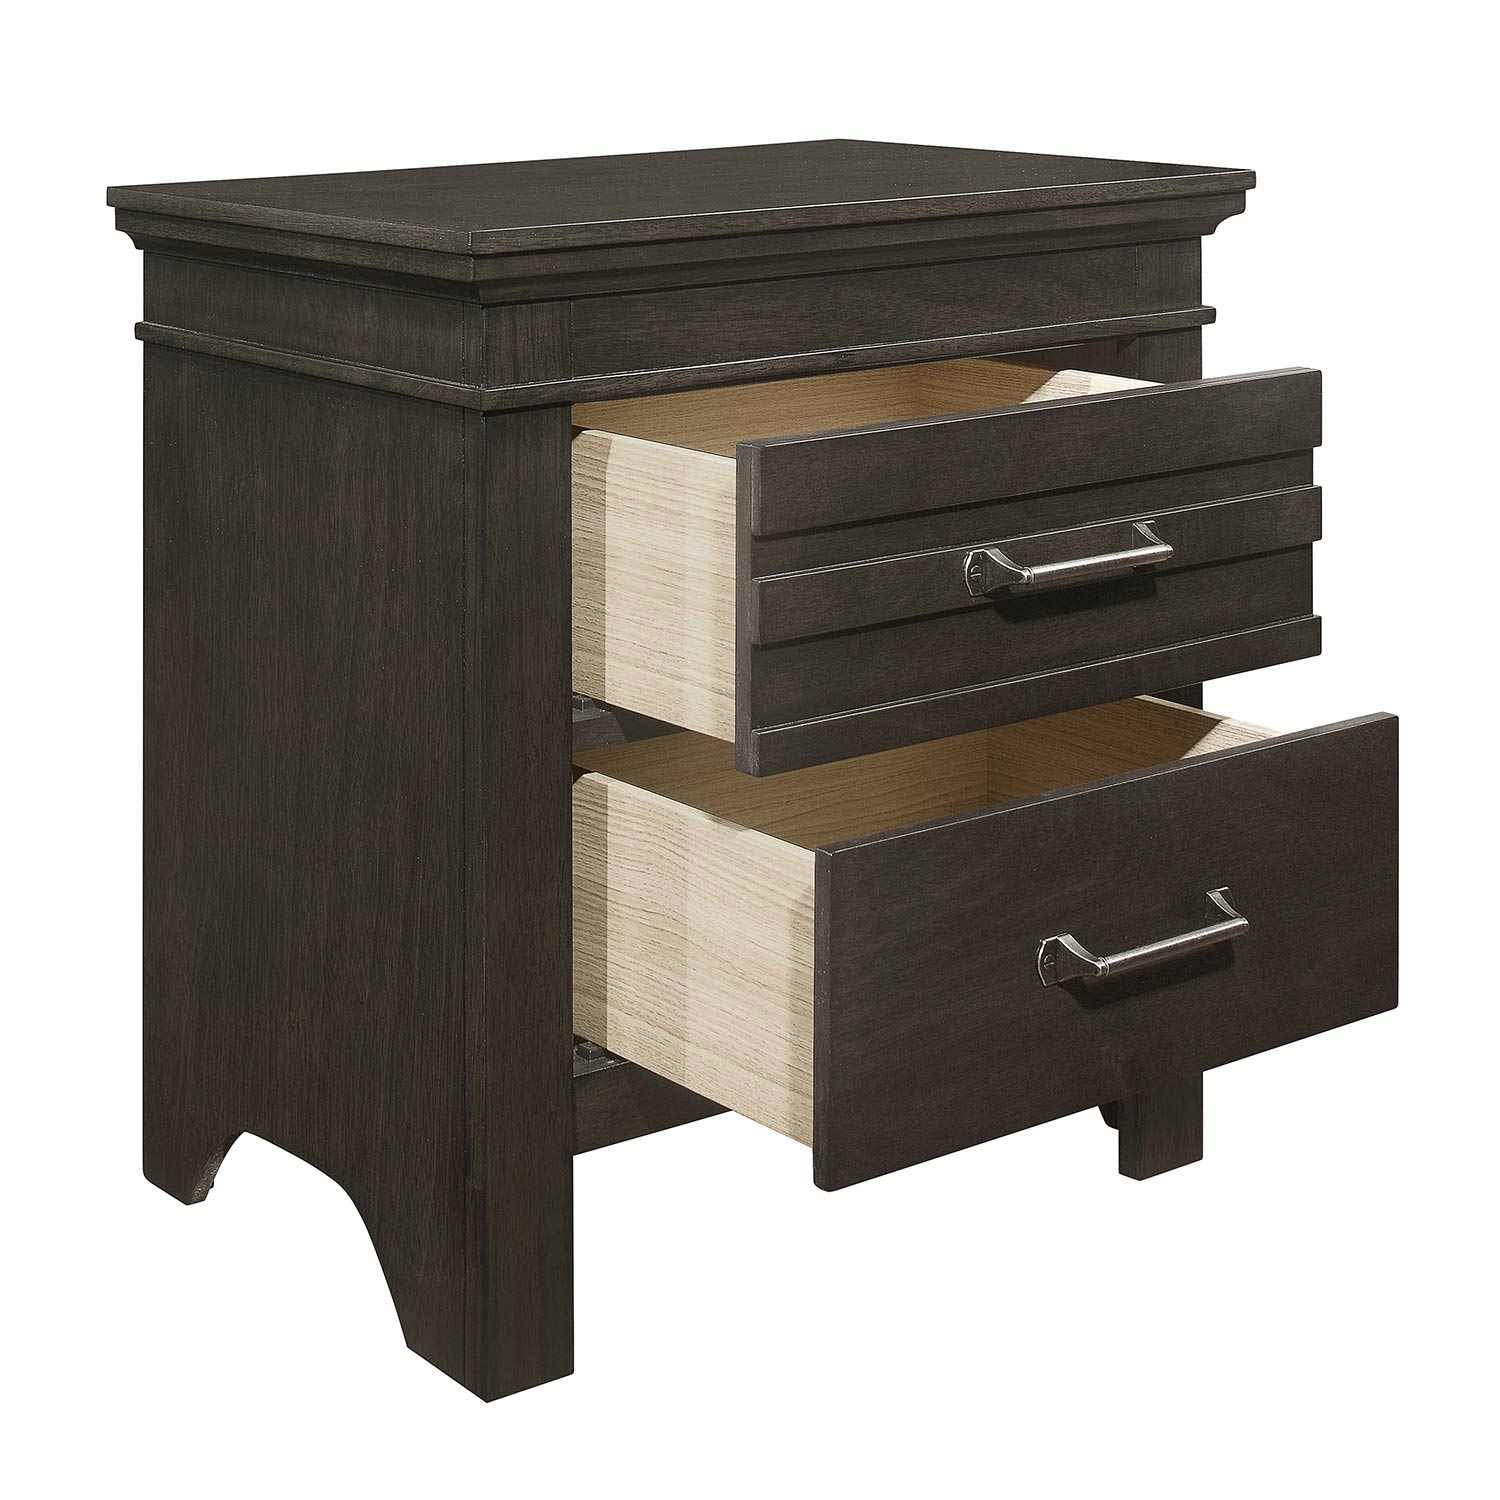 Homelegance Blaire Farm Night Stand - Espresso